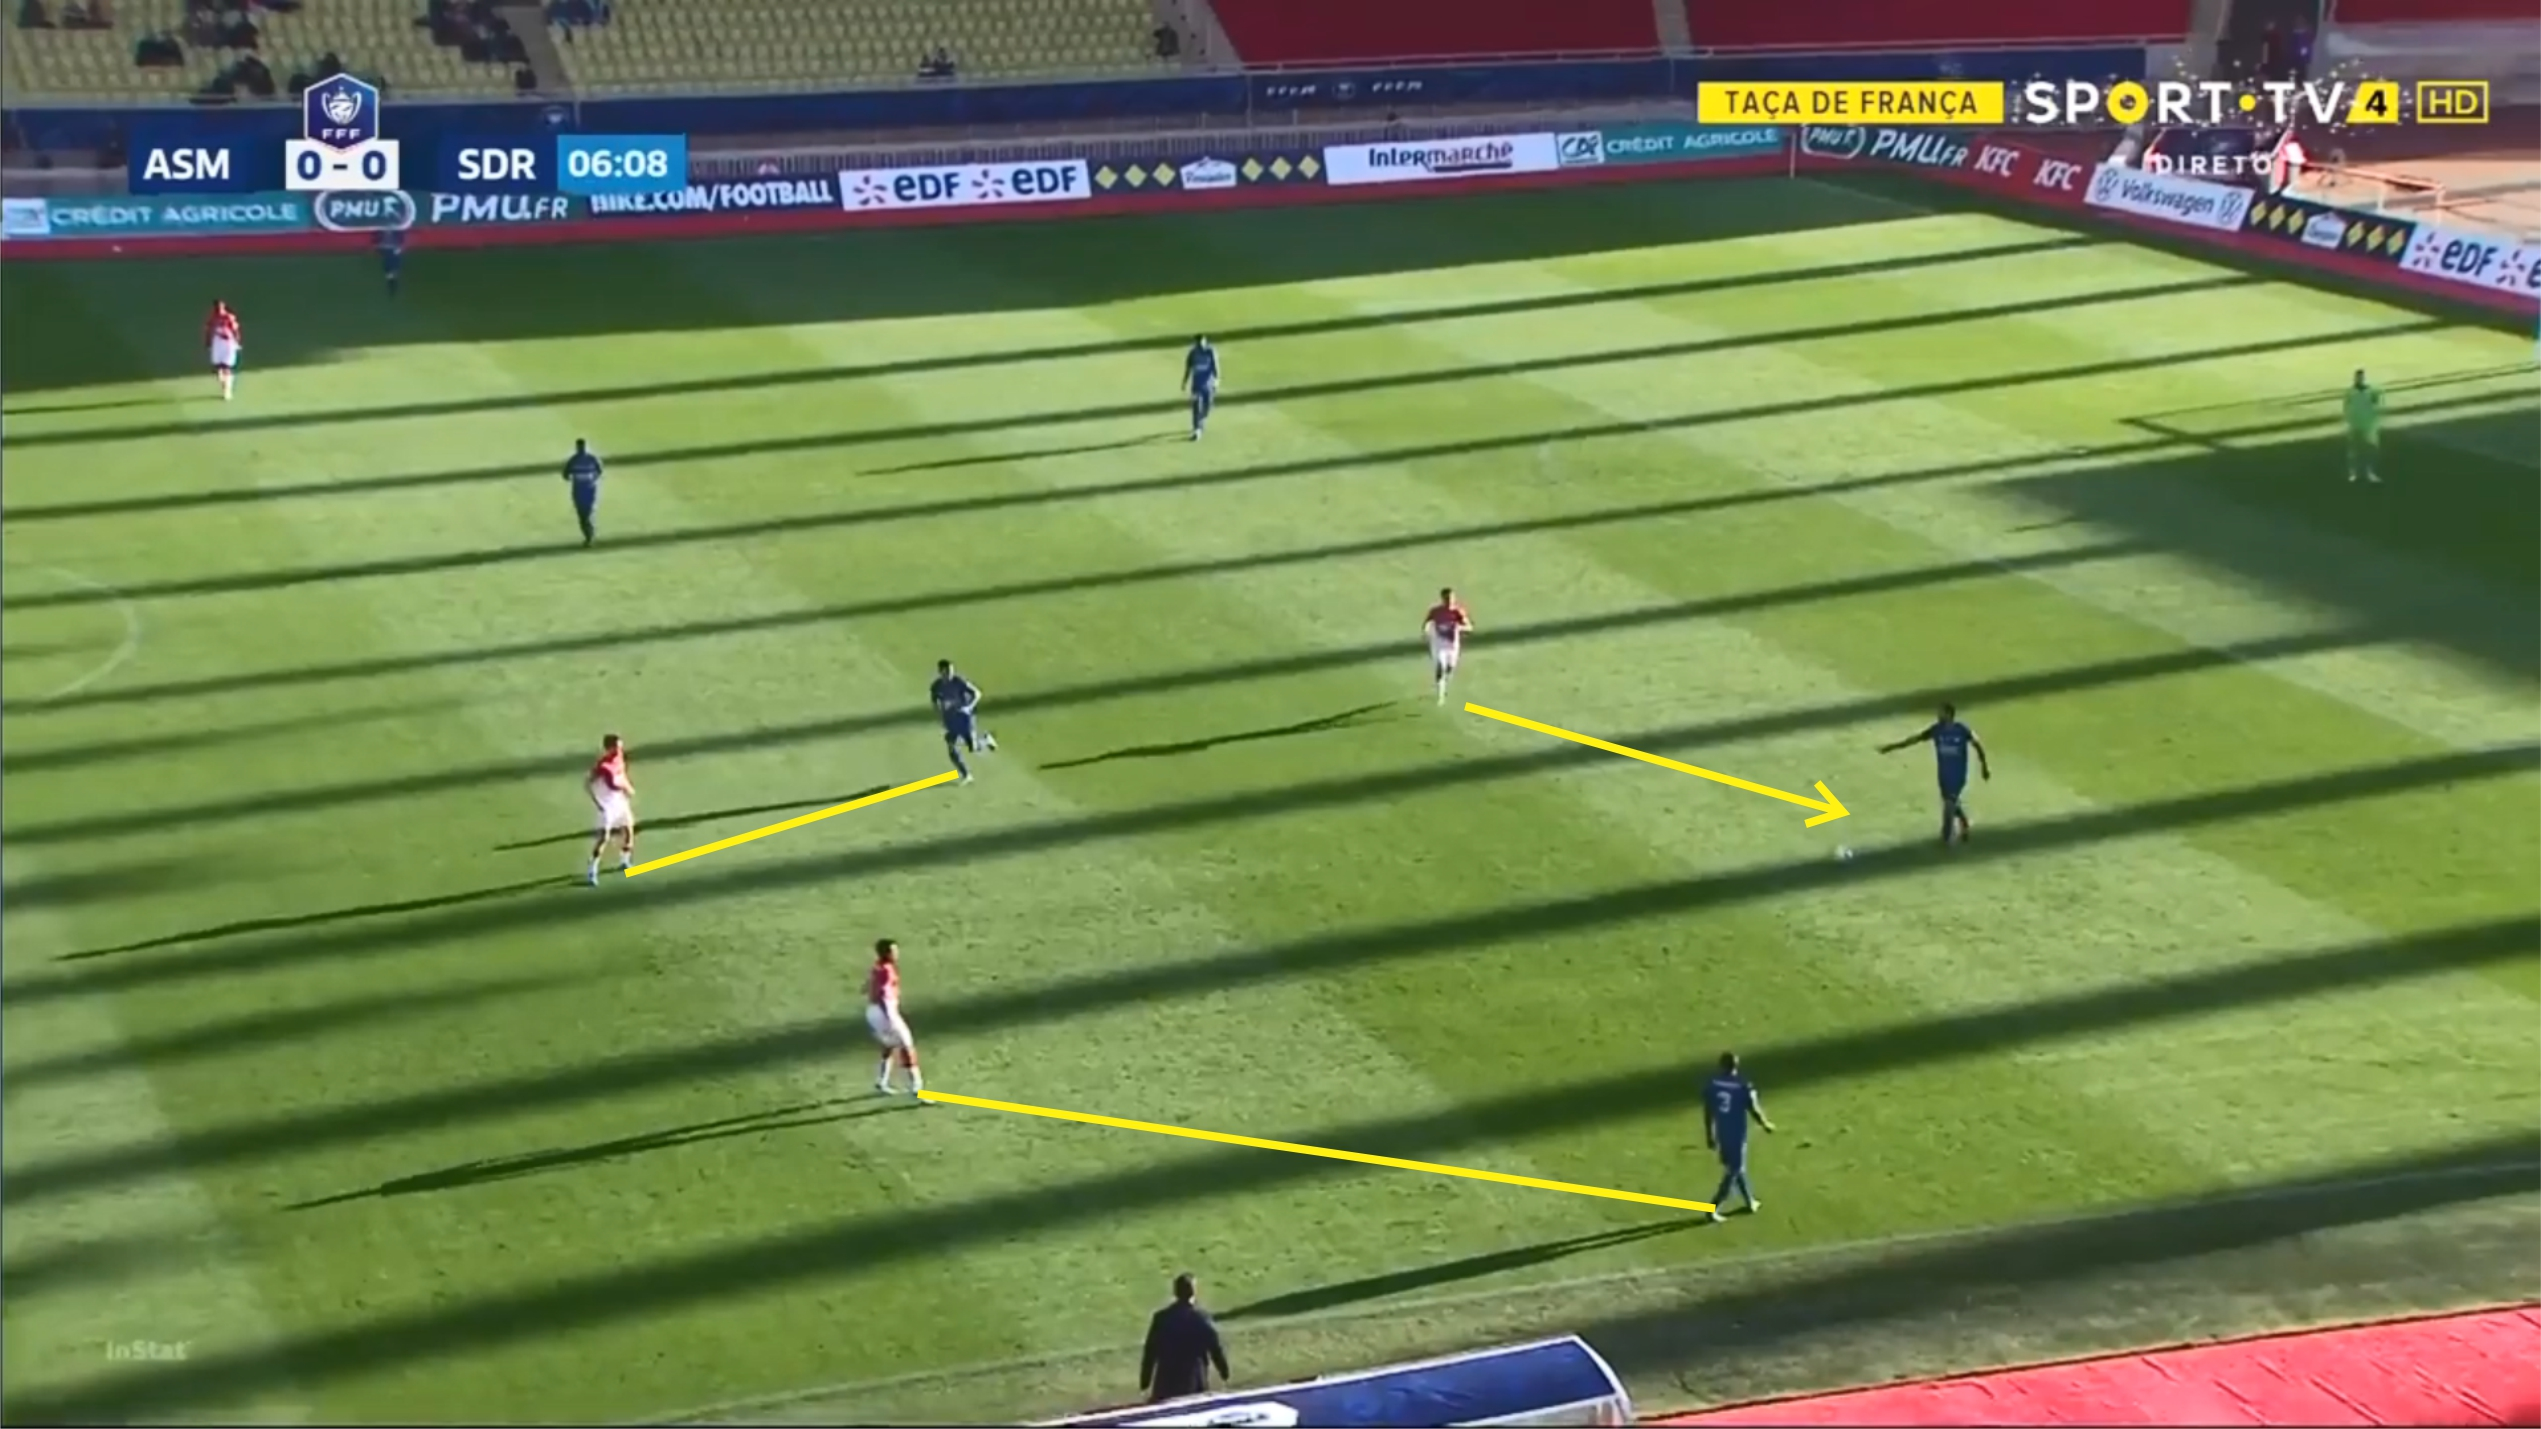 Coupe de France 2019/20: Monaco vs Reims - tactical analysis tactics